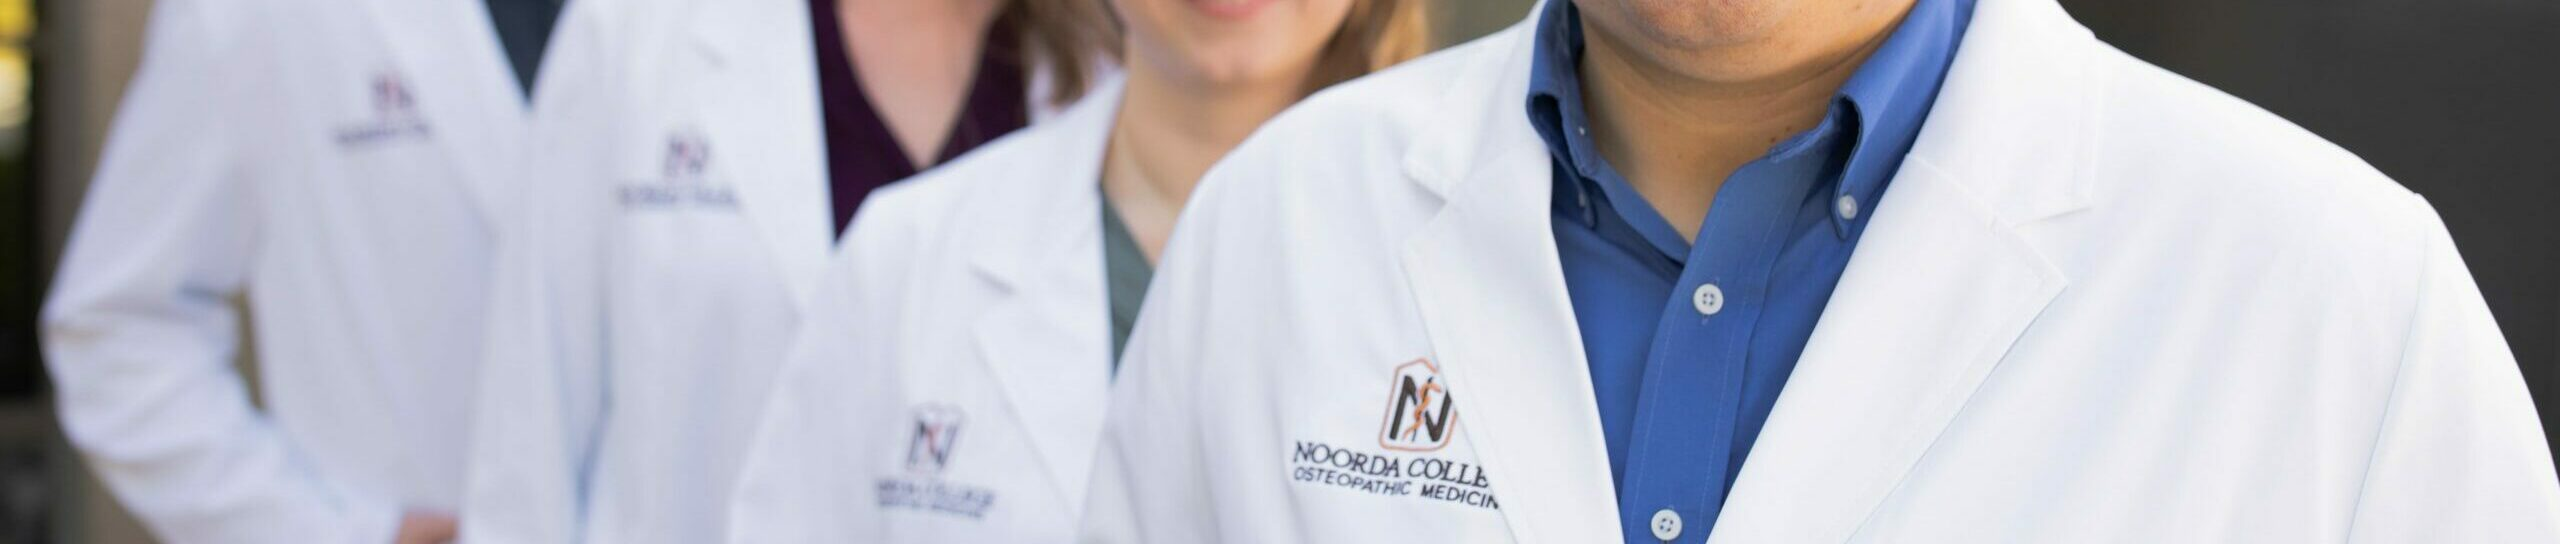 The Proposed Noorda College of Osteopathic Medicine Board of Trustees Holds Inaugural Meeting